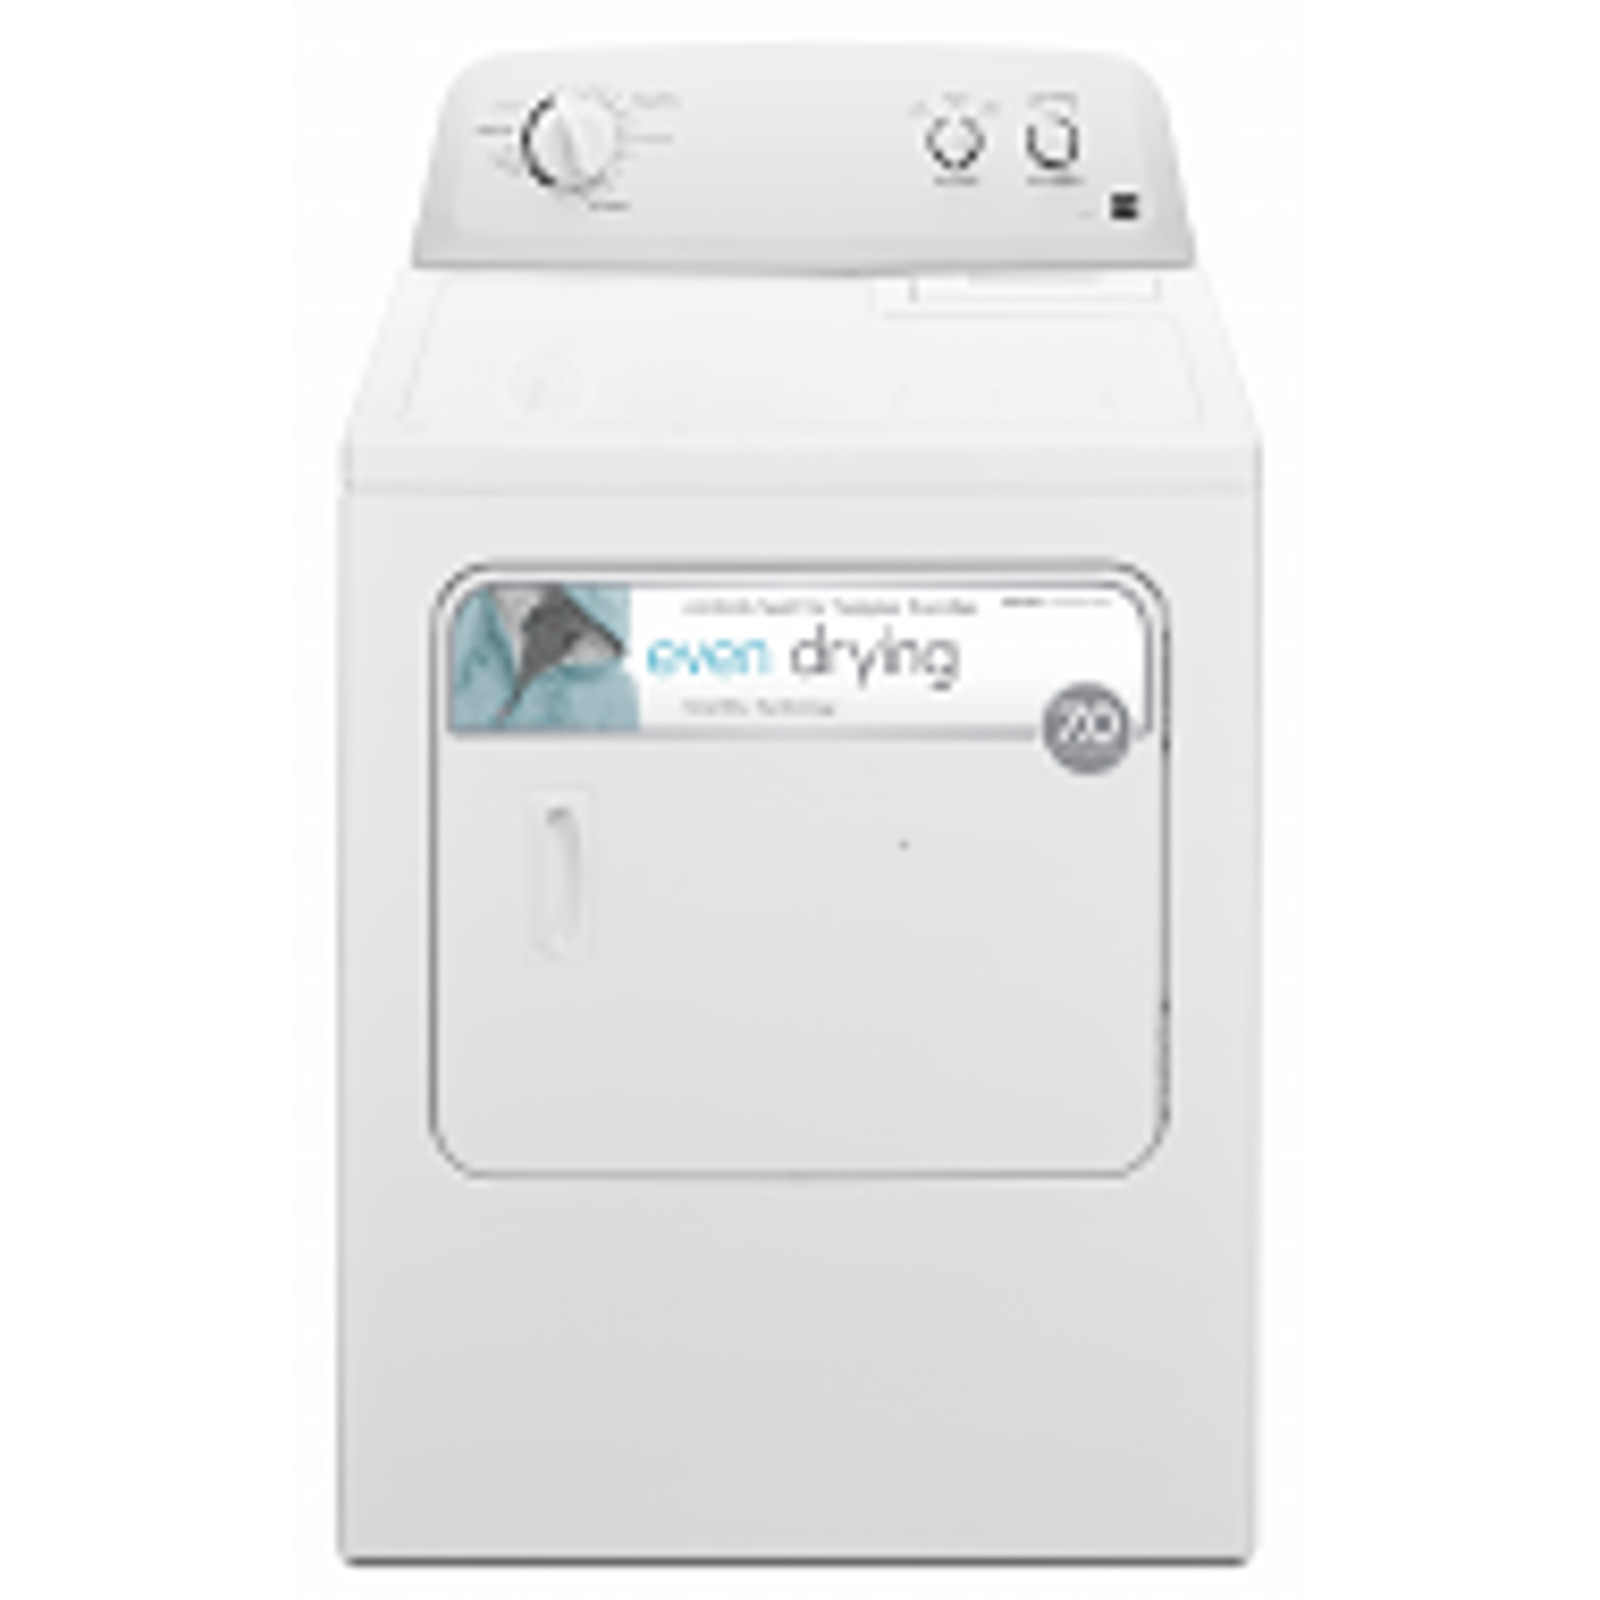 Kenmore 72332 7.0 cu. ft. Gas Dryer - White 72332